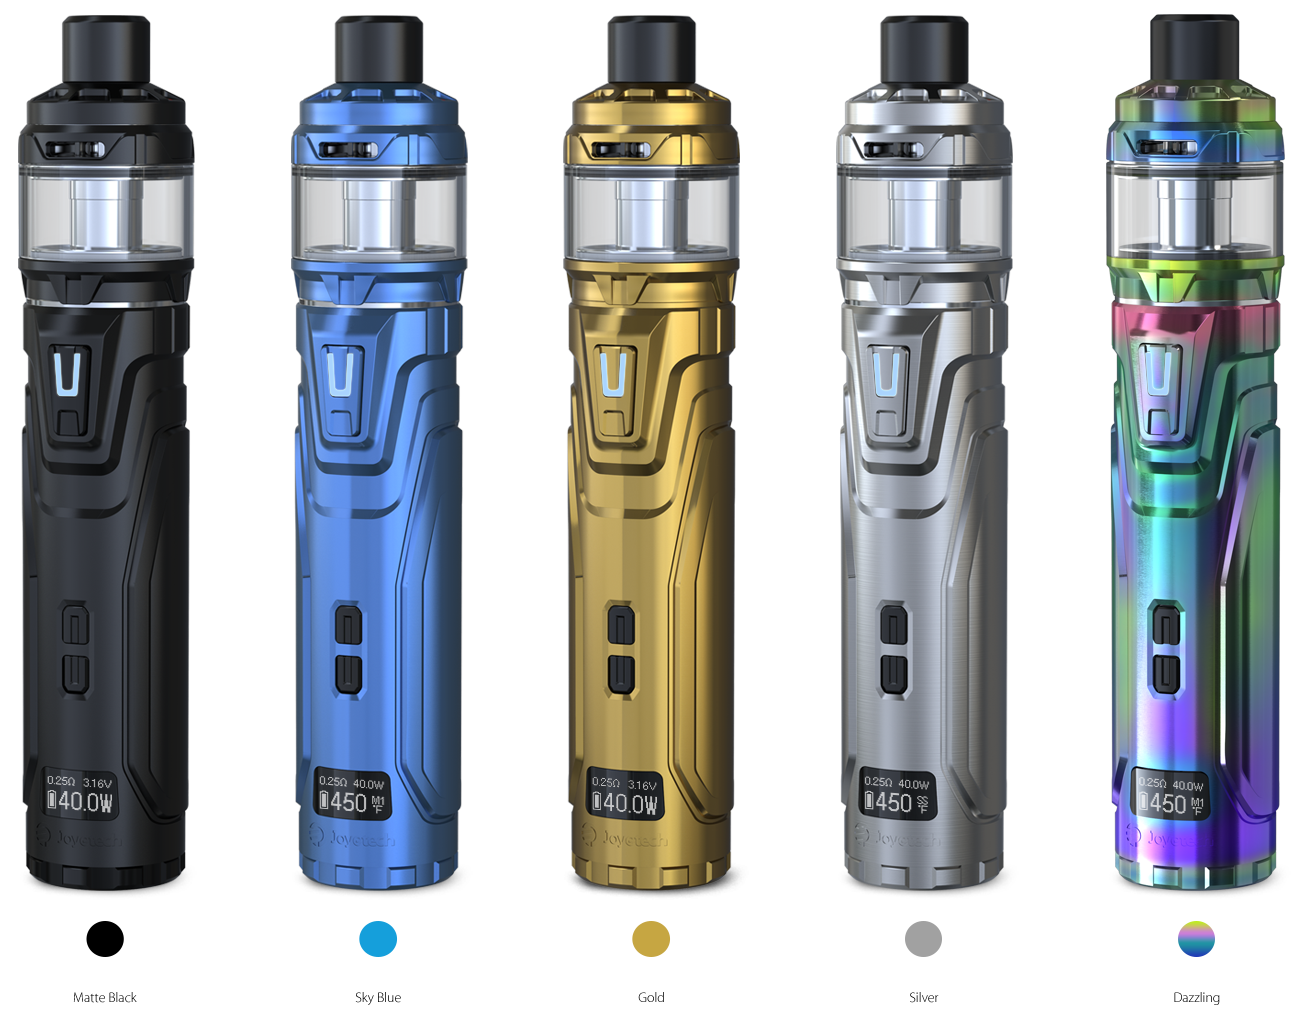 ULTEX T80 with CUBIS Max - Joyetech